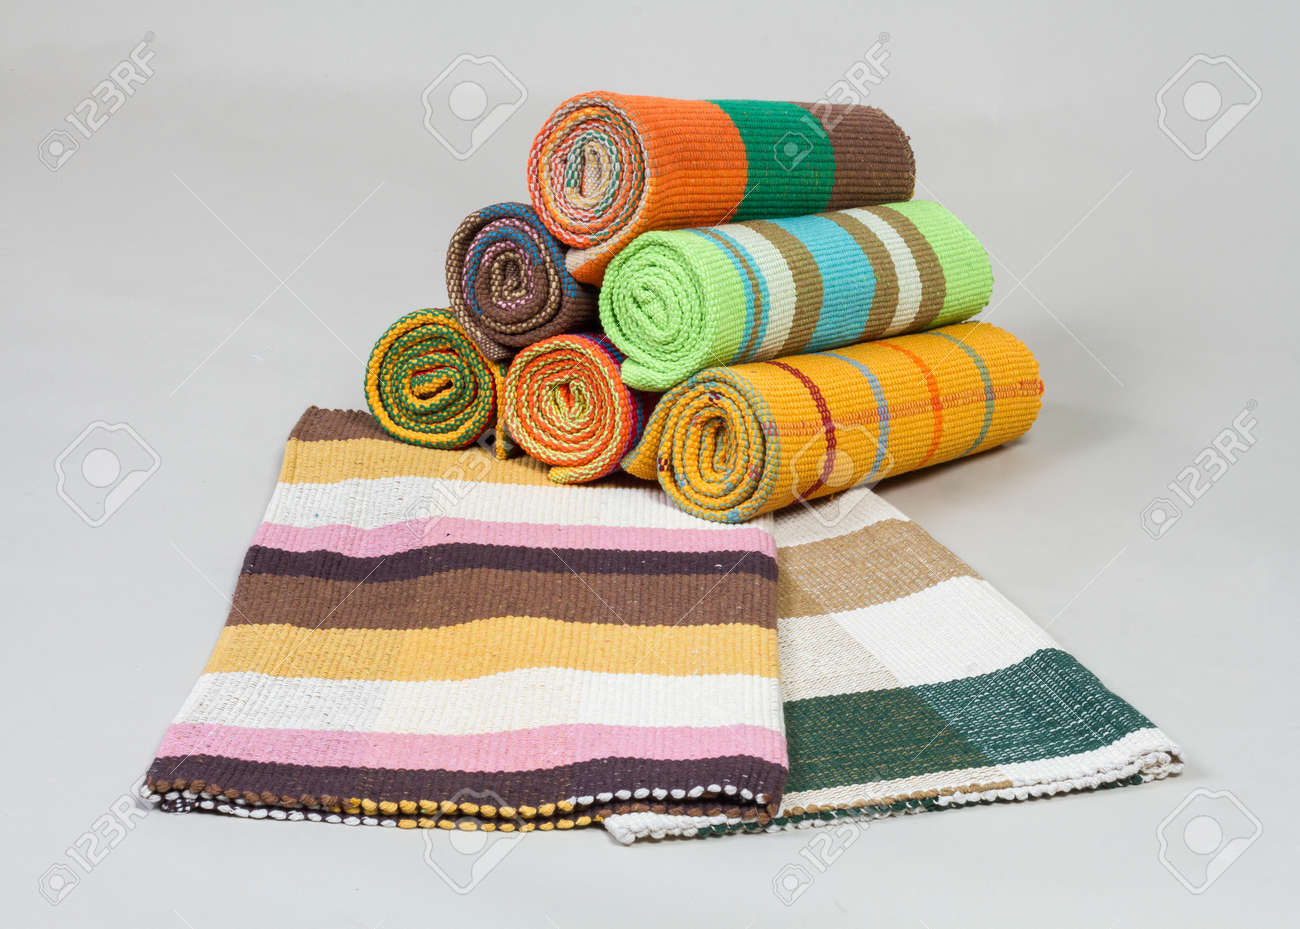 Stock Photo   Striped Colorful Table Runners On Gray Background